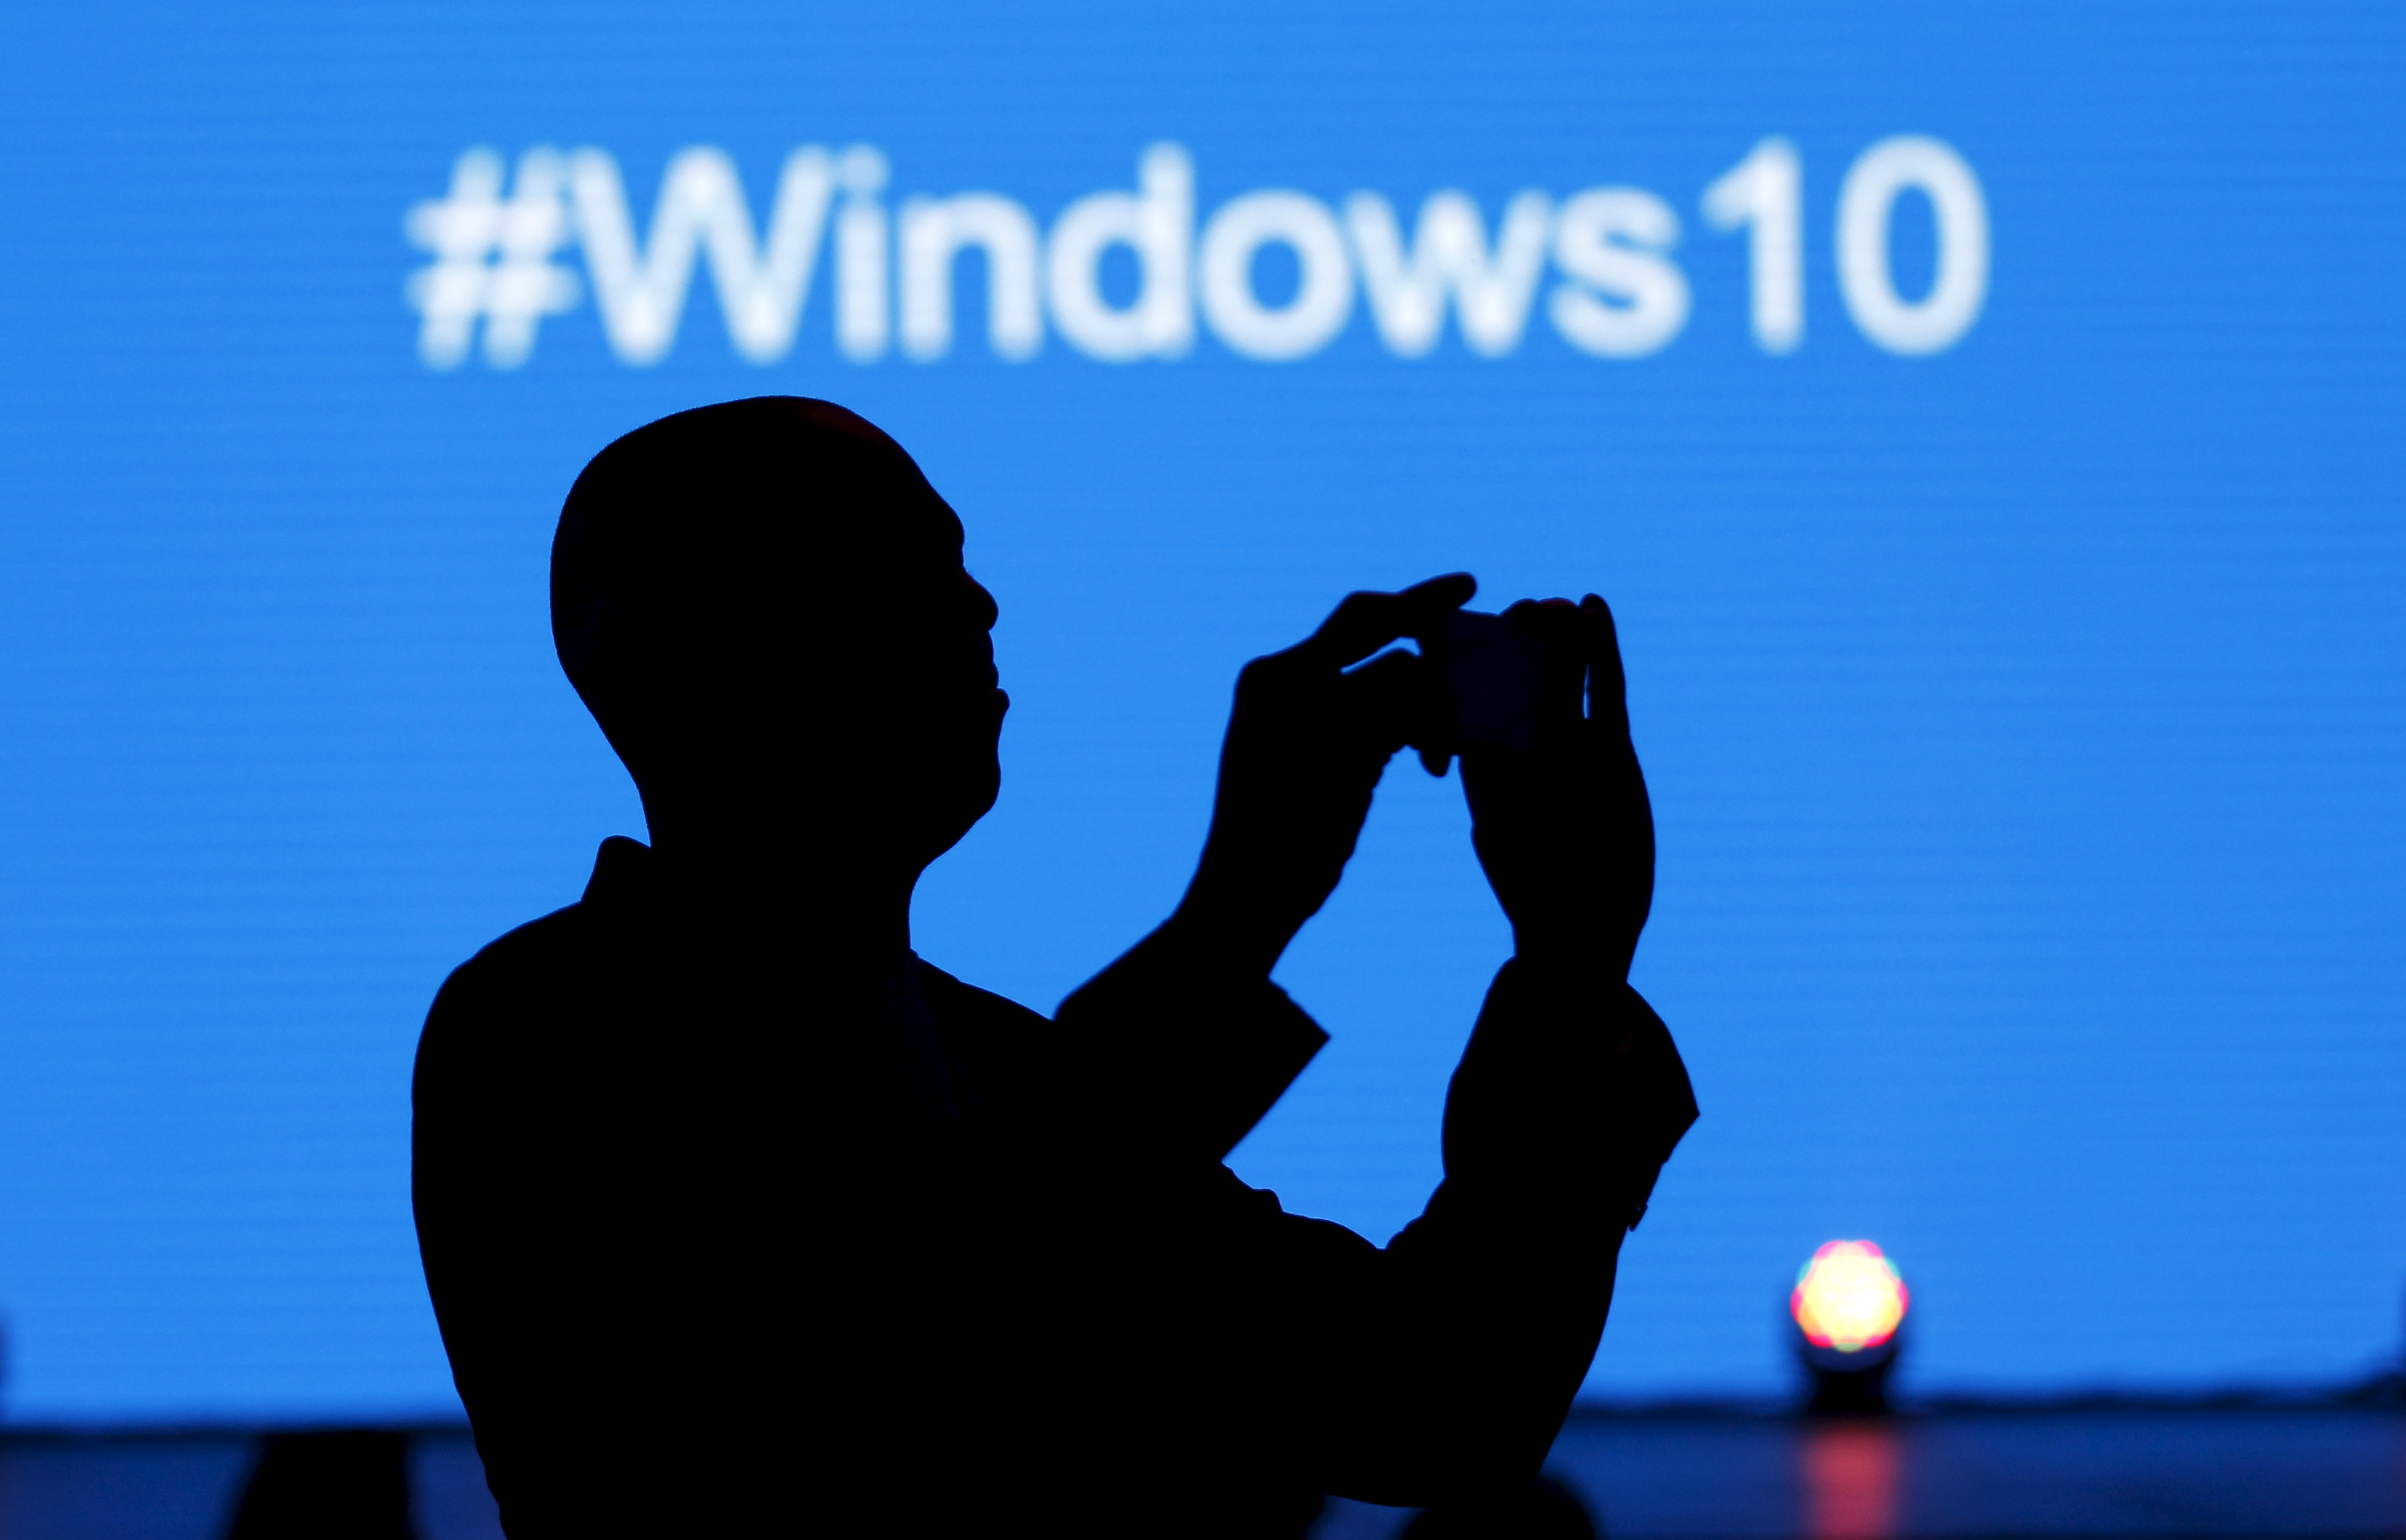 A Microsoft delegate takes a picture during the launch of the Windows 10 operating system in Kenya's capital Nairobi, July 29, 2015. (Reuters)